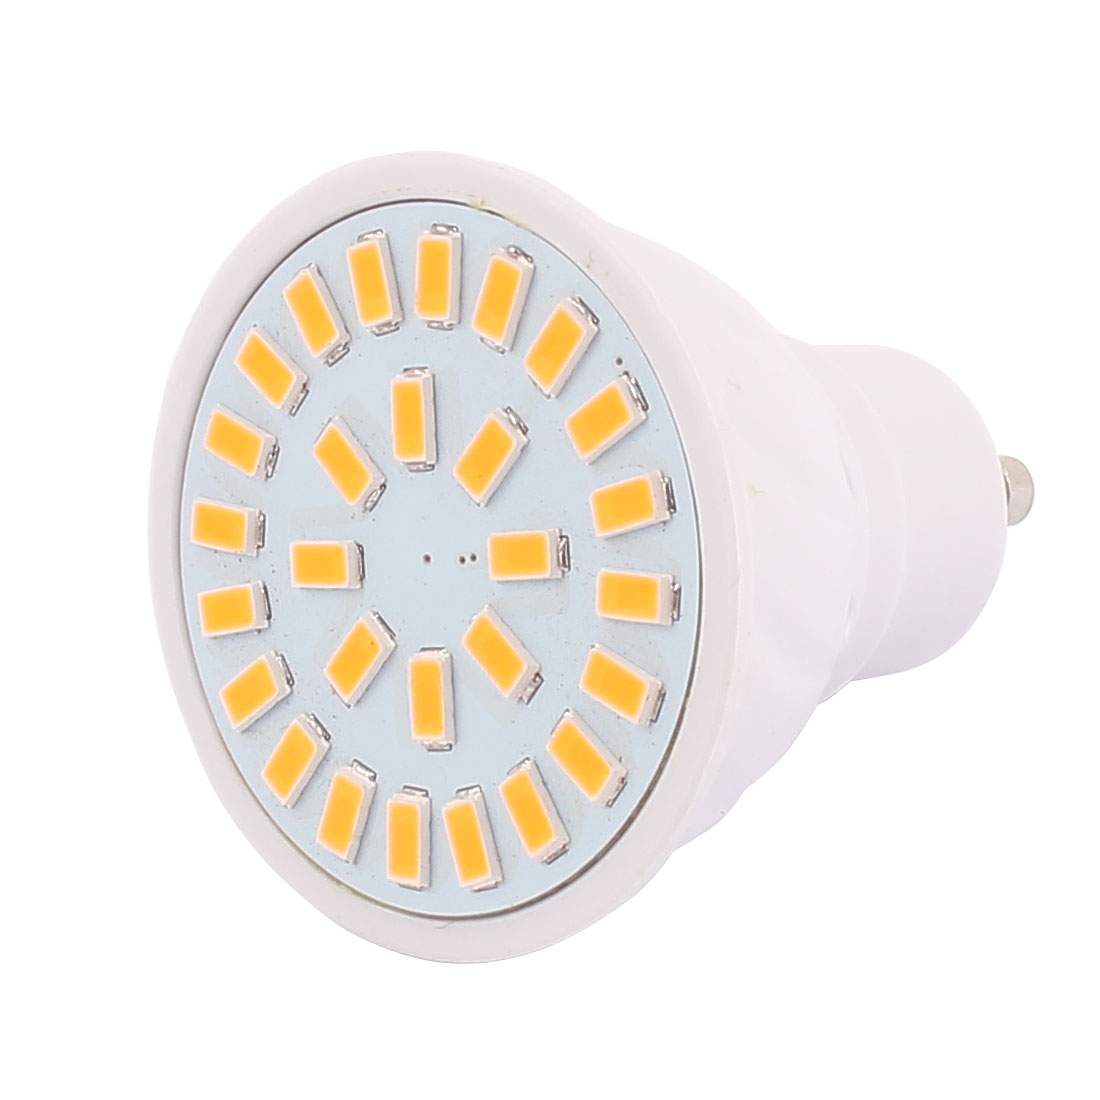 220V GU10 LED Light 4W 5730 SMD 28 LEDs Spotlight Down Lamp Bulb Warm White